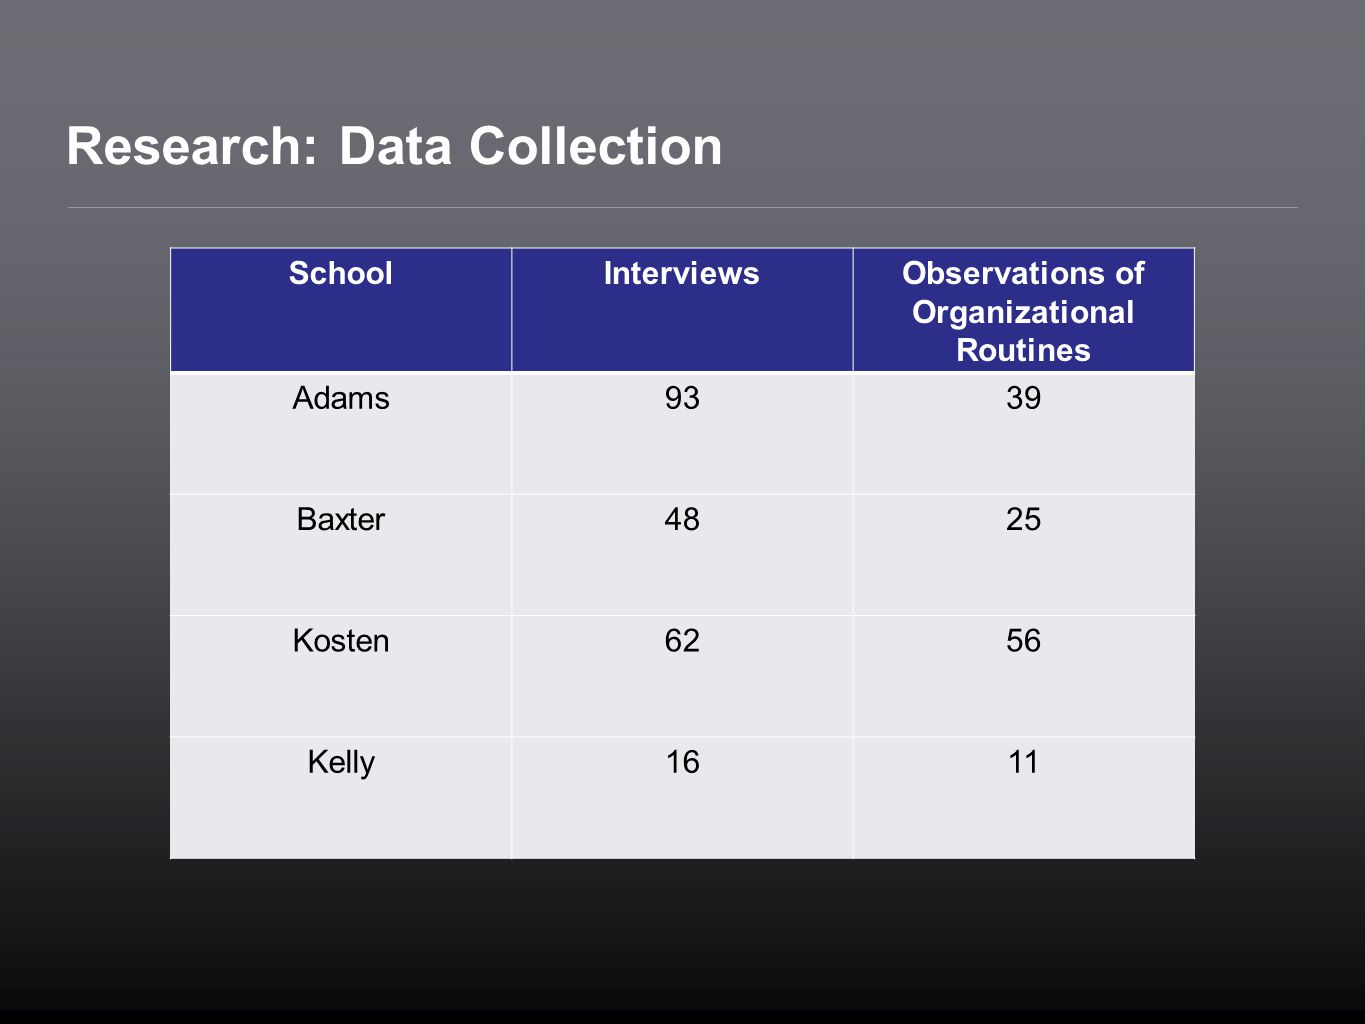 Research: Data Collection